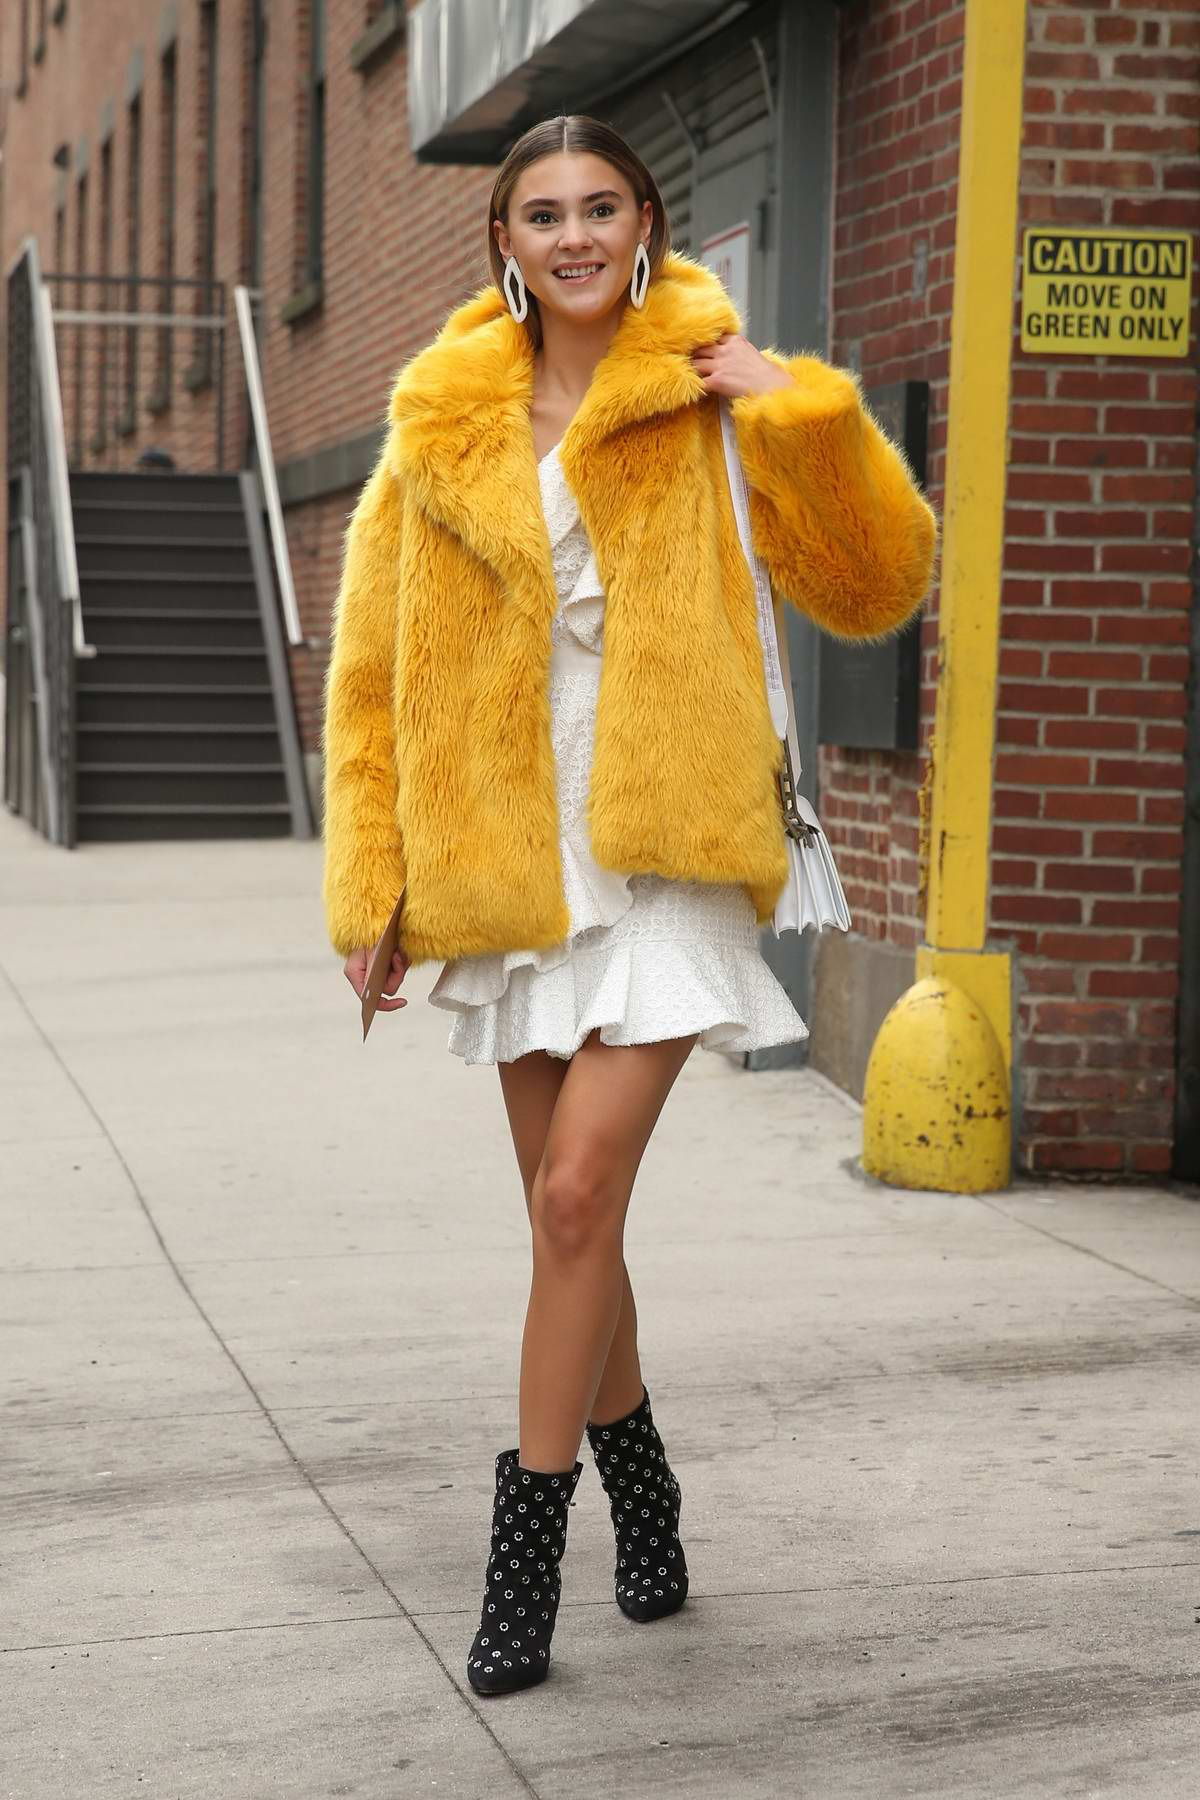 Stefanie Giesinger arrives for Self-Portrait A/W Show wearing a yellow faux fur jacket during New York Fashion Week in New York City